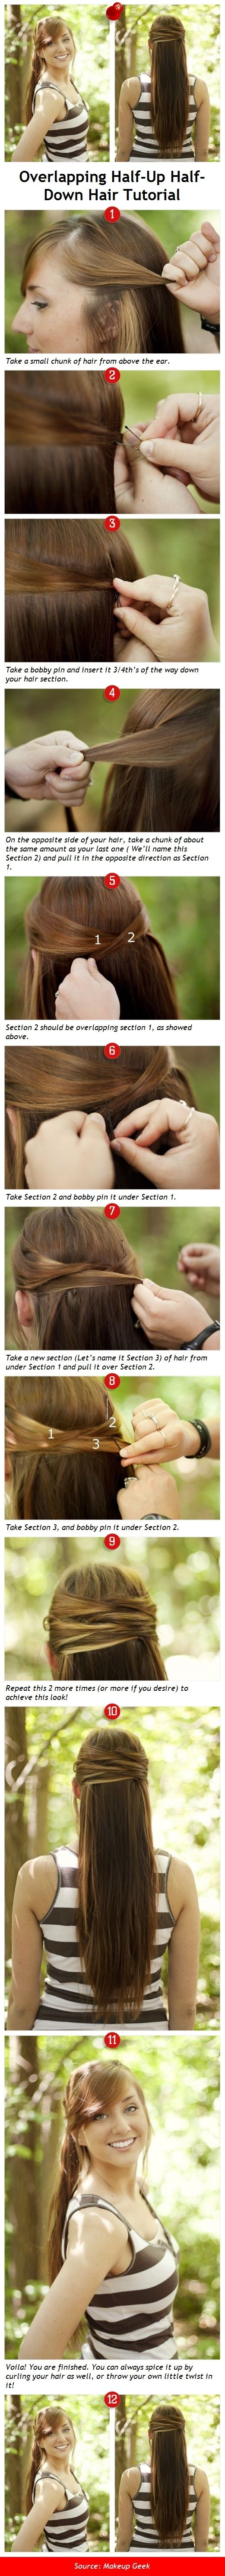 Overlapping Hair Tutorial